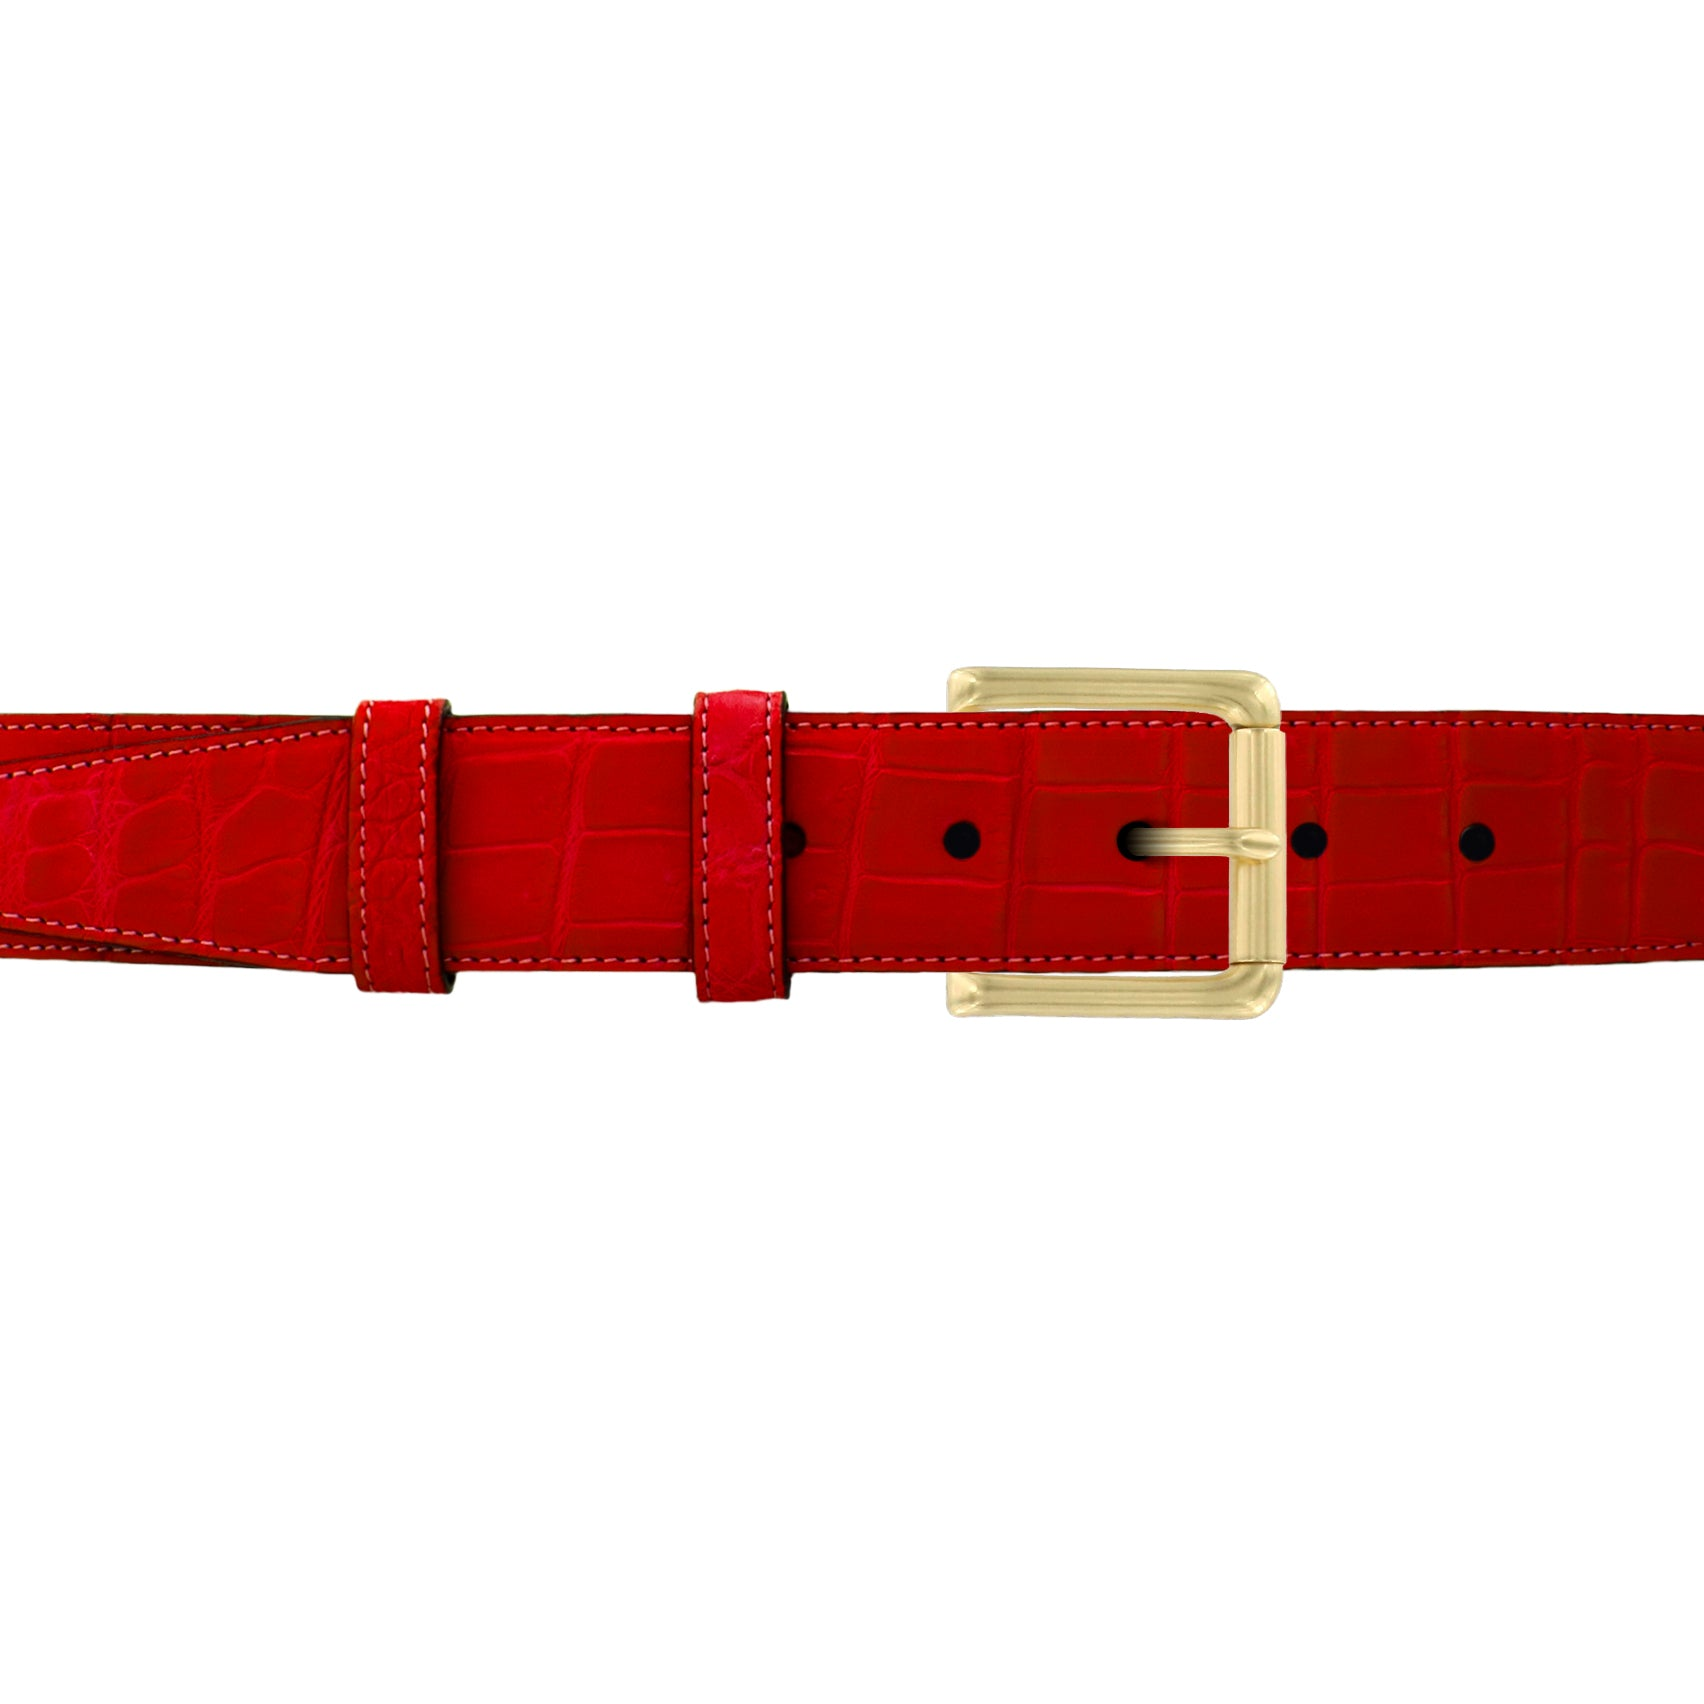 "1 1/2"" Candy Seasonal Belt with Austin Casual Buckle in Brass"